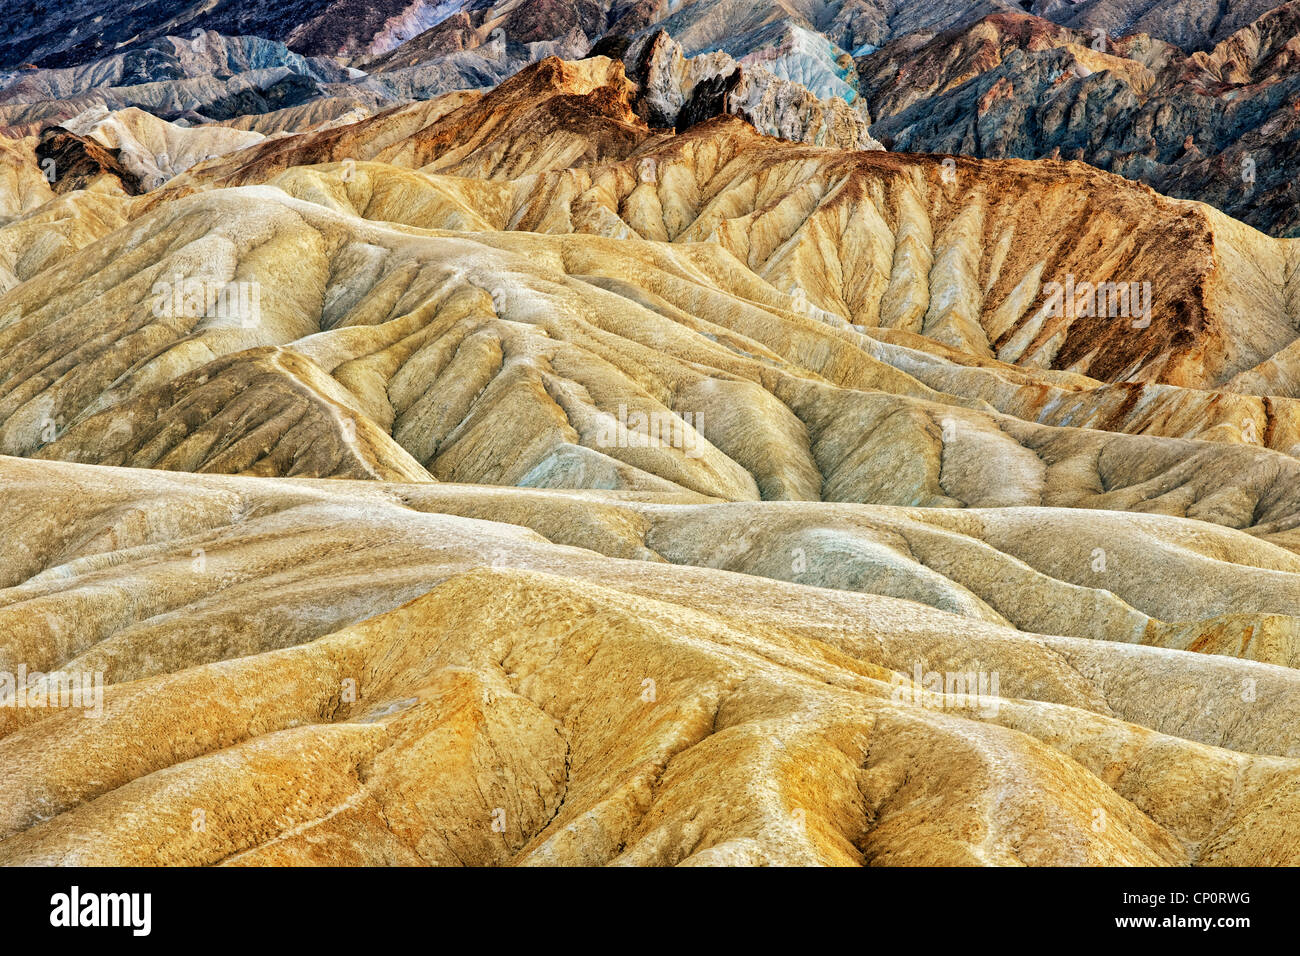 The sun baked badlands and many hues of Golden Canyon in California's Death Valley National Park. - Stock Image